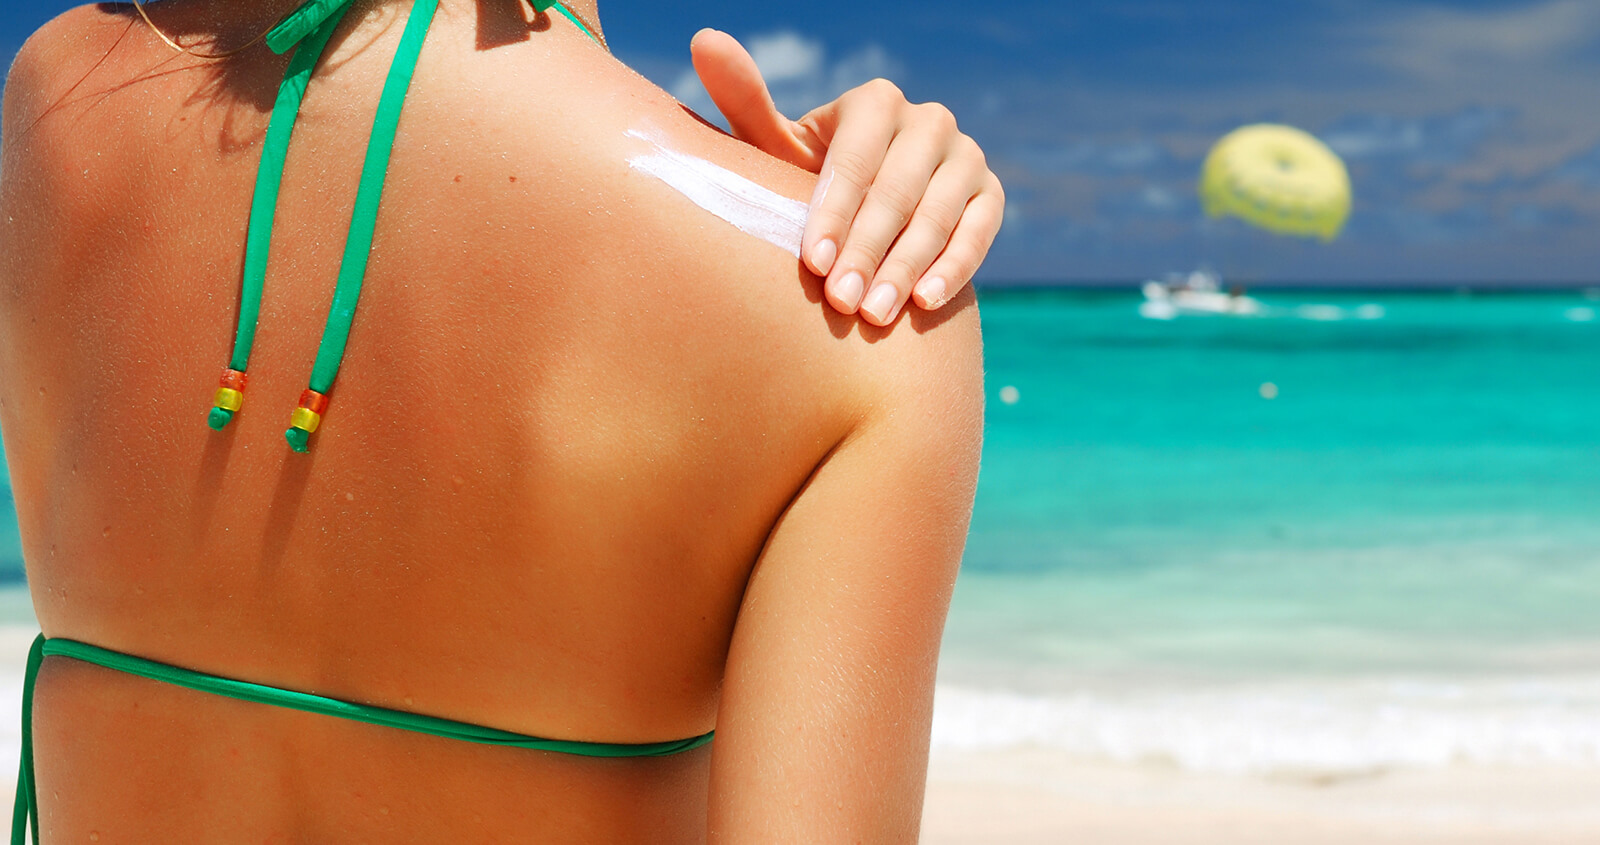 Dermatologist Explains What to Look for in a Safe and Effective Sunscreen in New York, NY Area